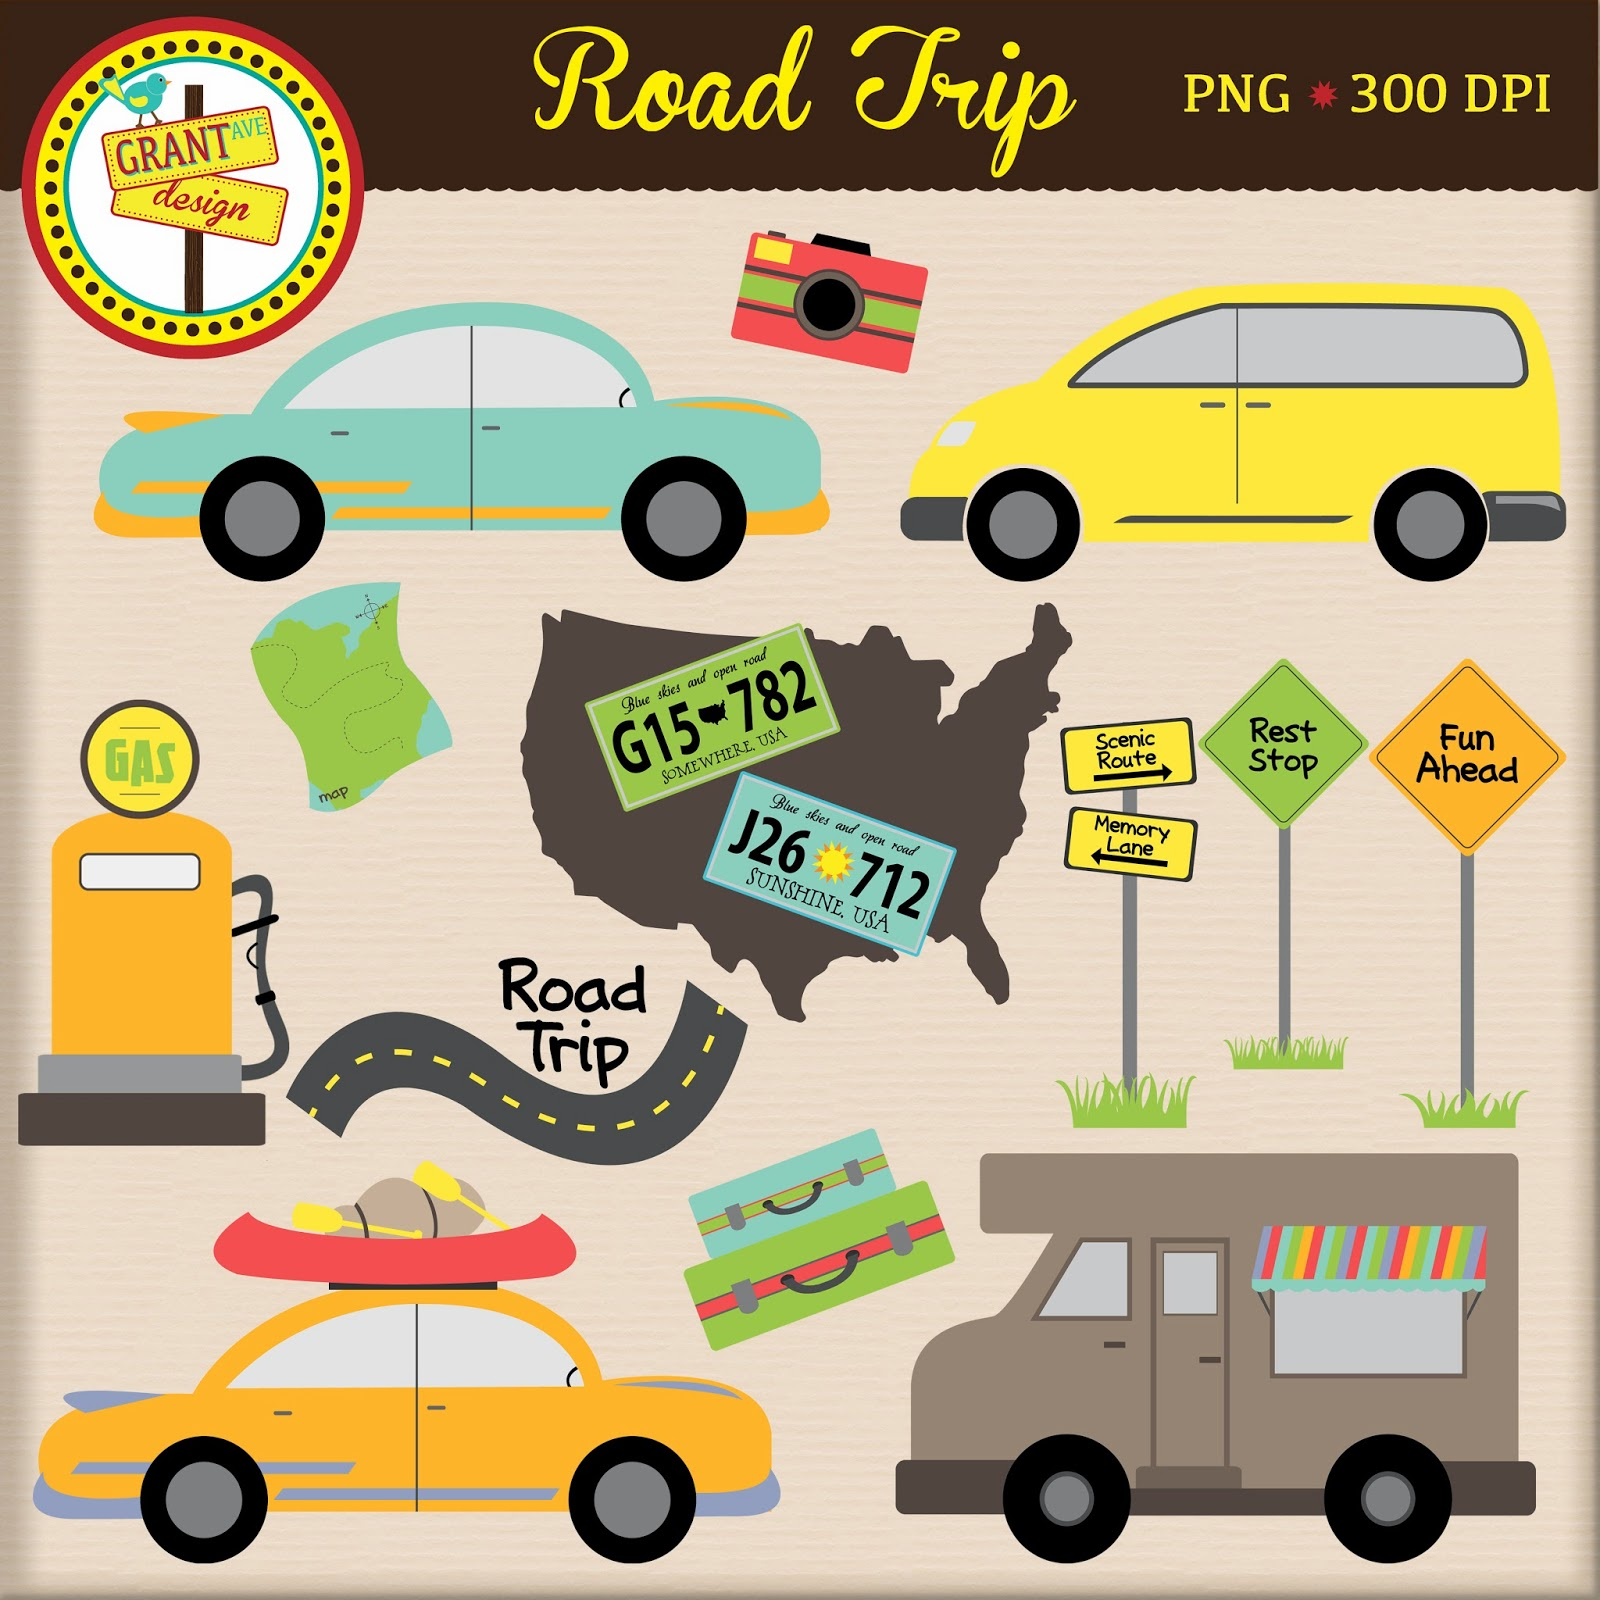 Road trip map clipart svg library download College Road Trip Clipart - Clipart Kid svg library download